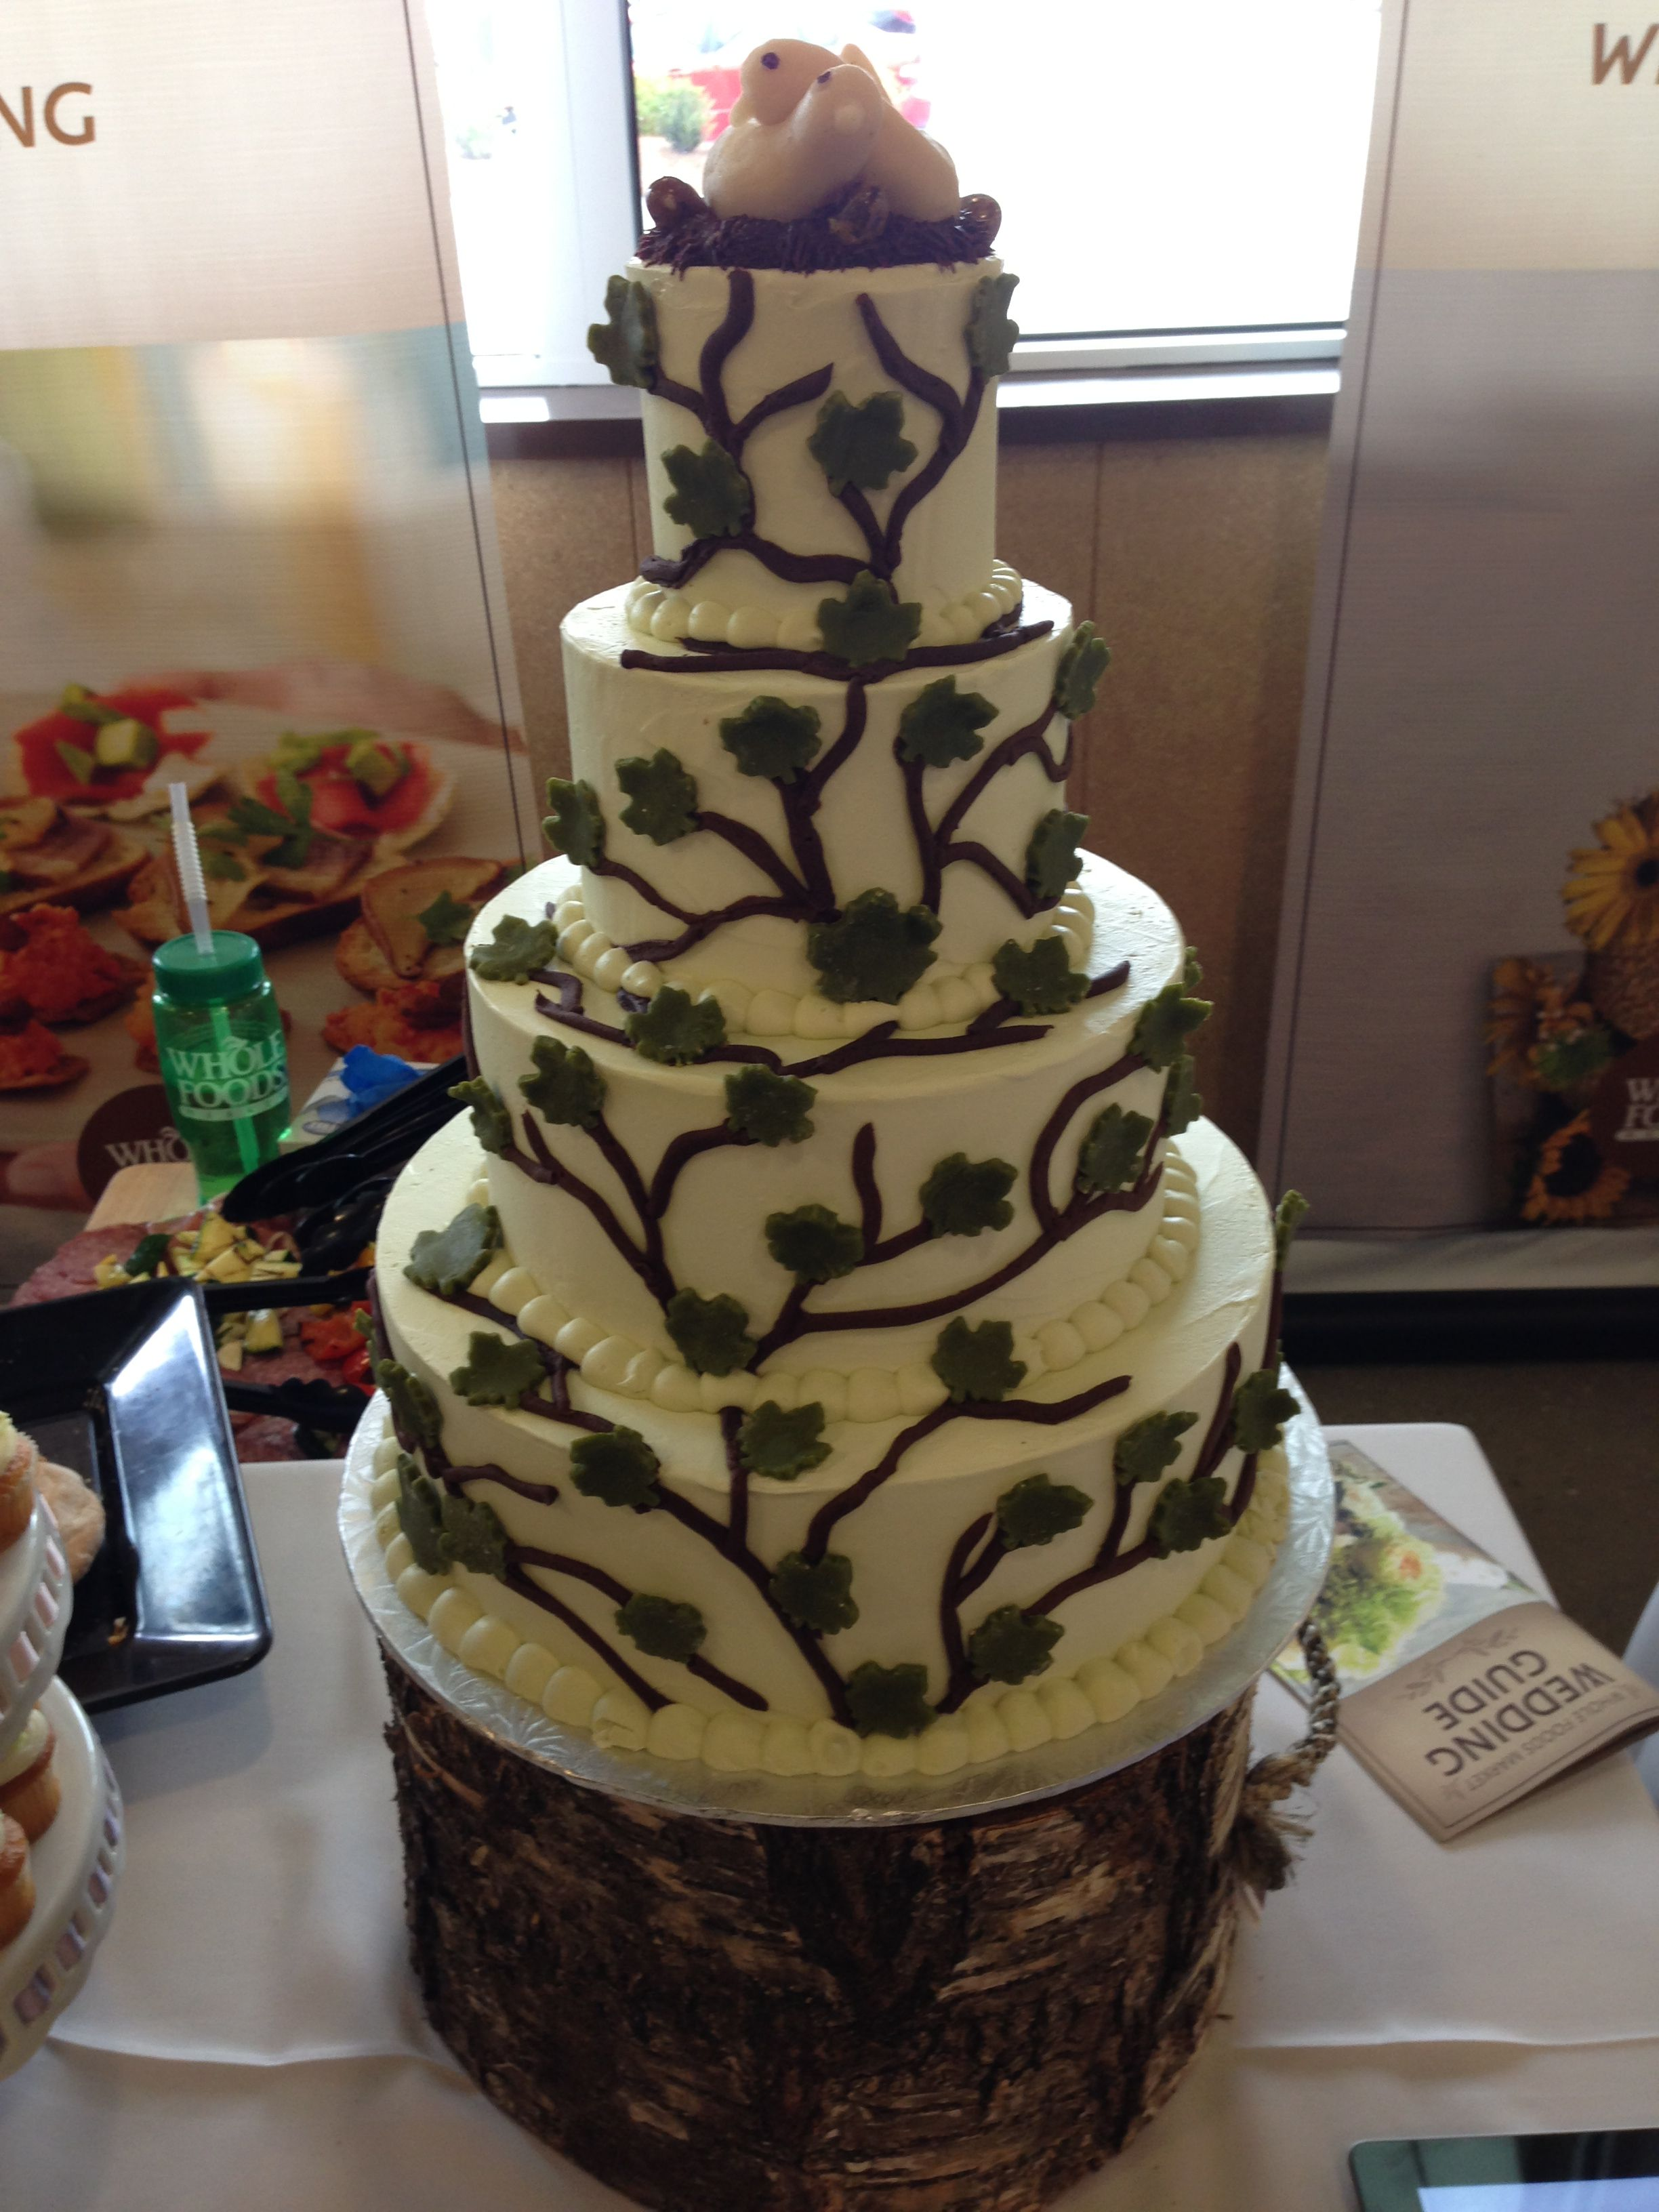 whole foods market wedding cake cakes pinterest. Black Bedroom Furniture Sets. Home Design Ideas